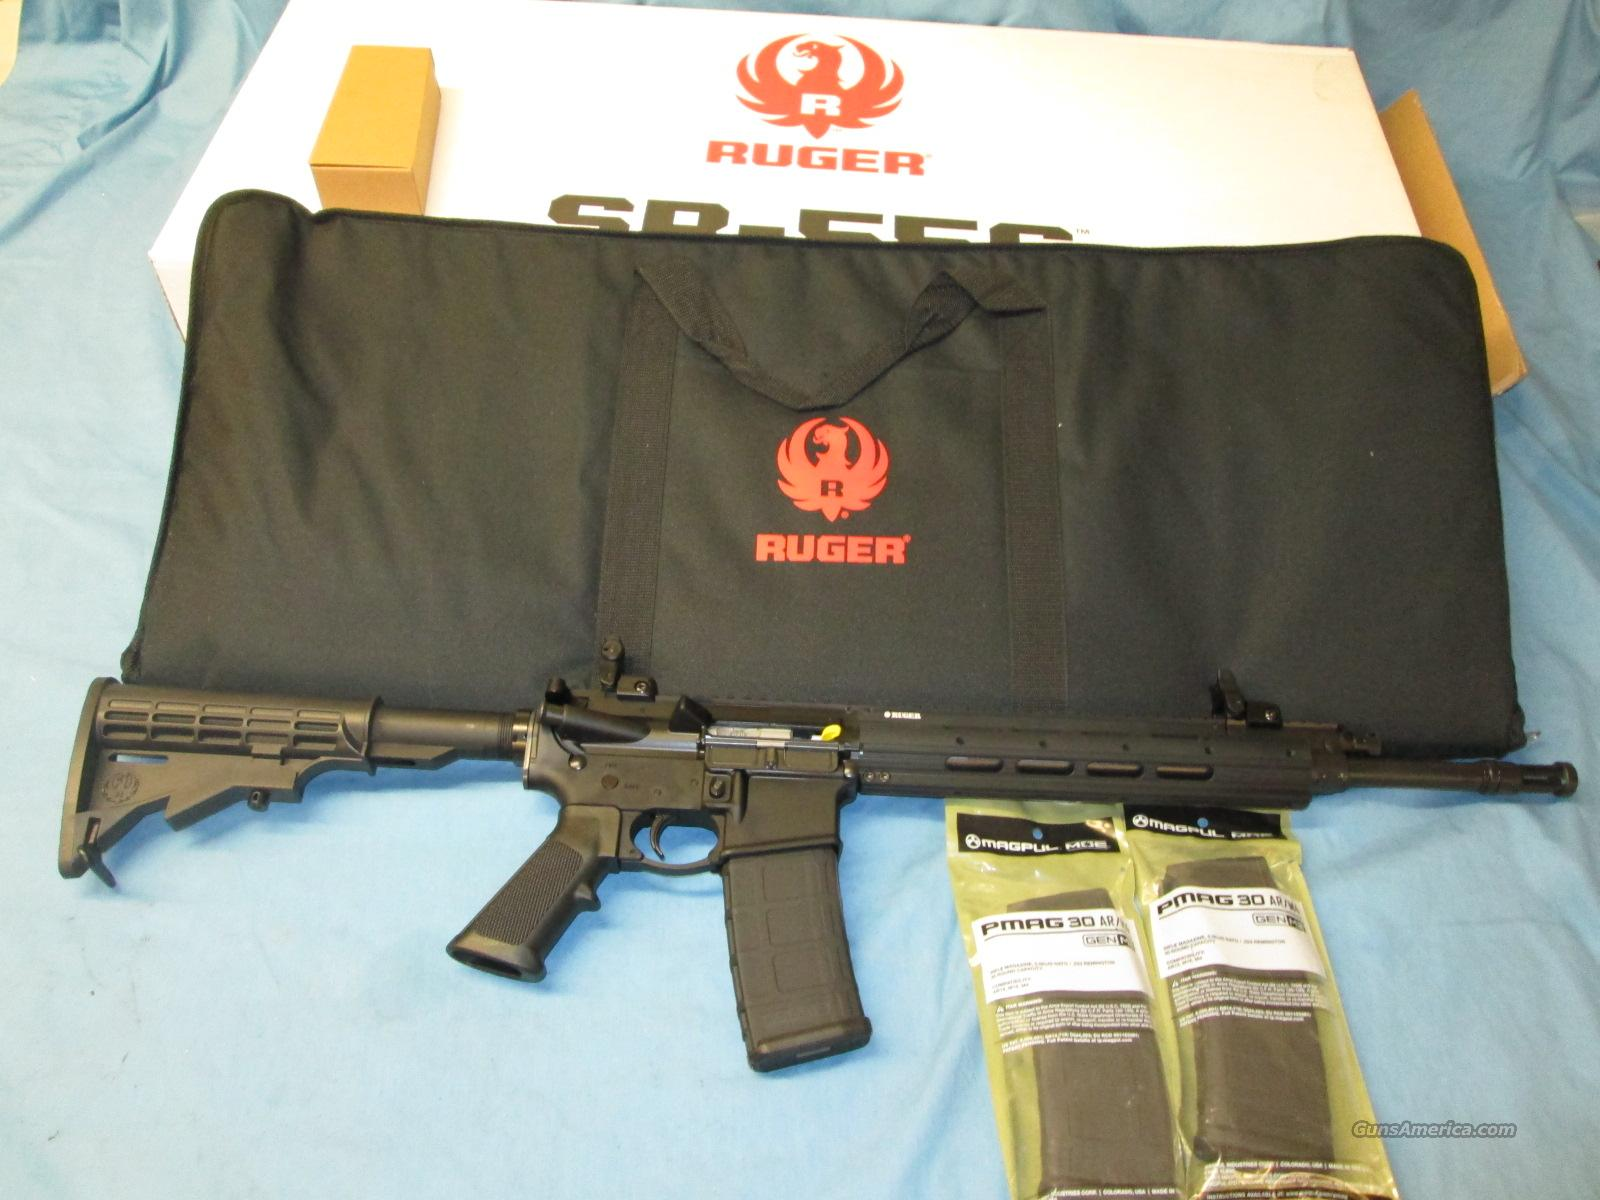 Clearance Sale! RUGER SR-556E + Extras  Guns > Rifles > Ruger Rifles > SR-556